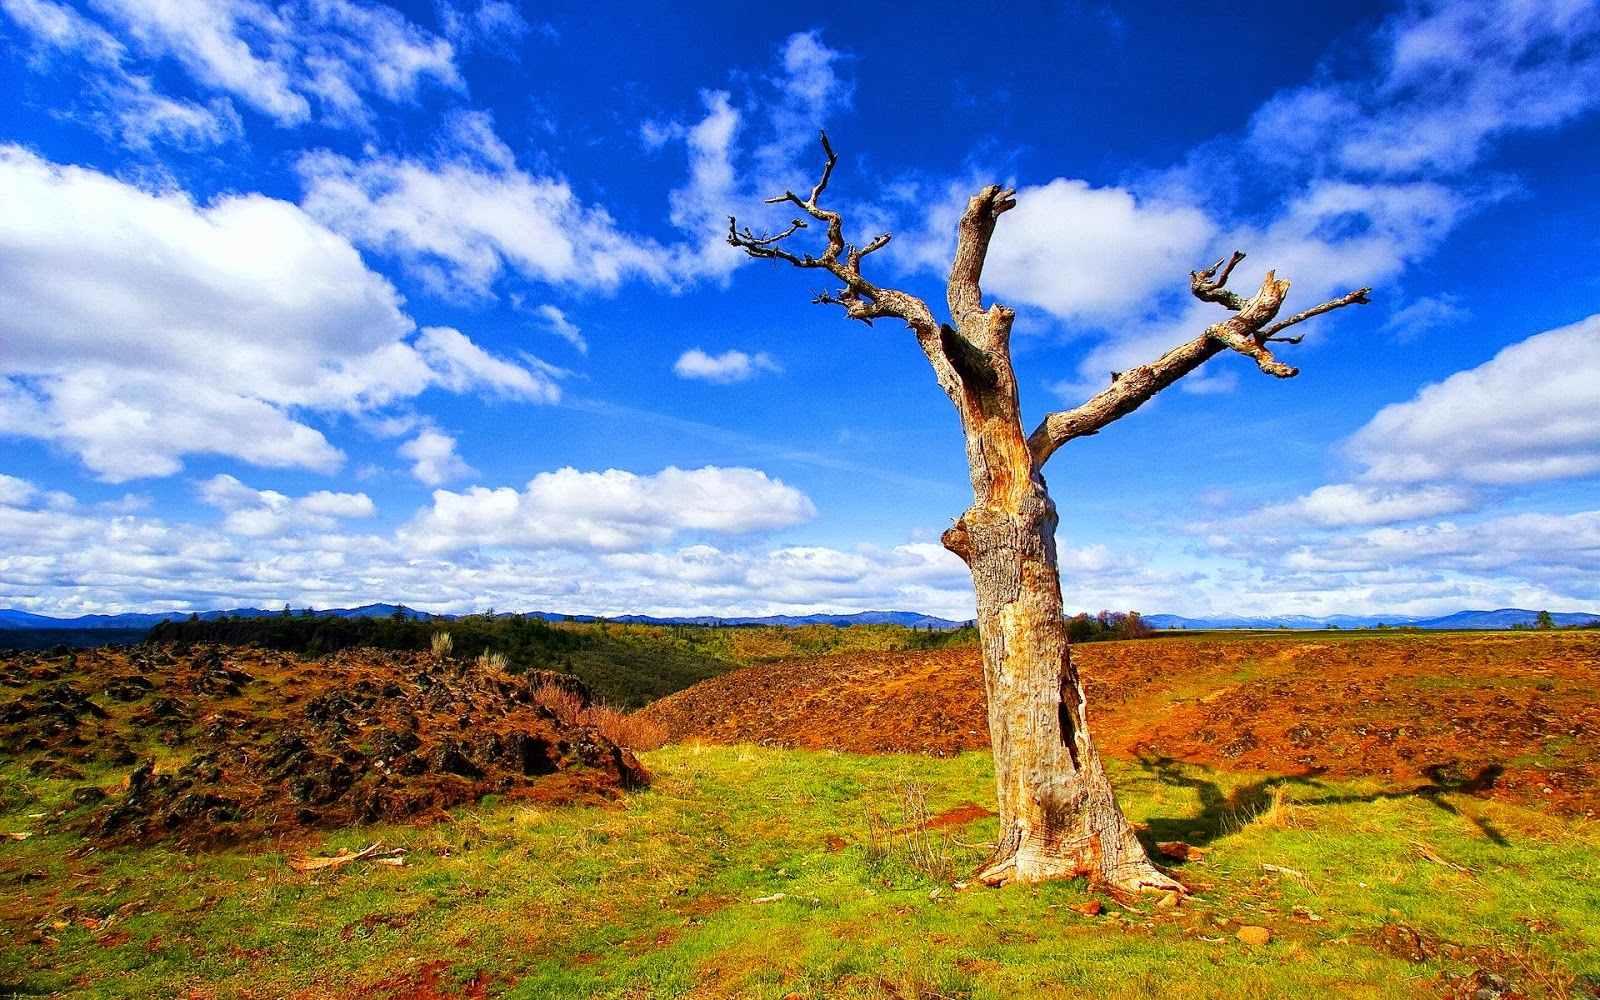 Hd wallpapers blog nature photos and themes for Ideanature